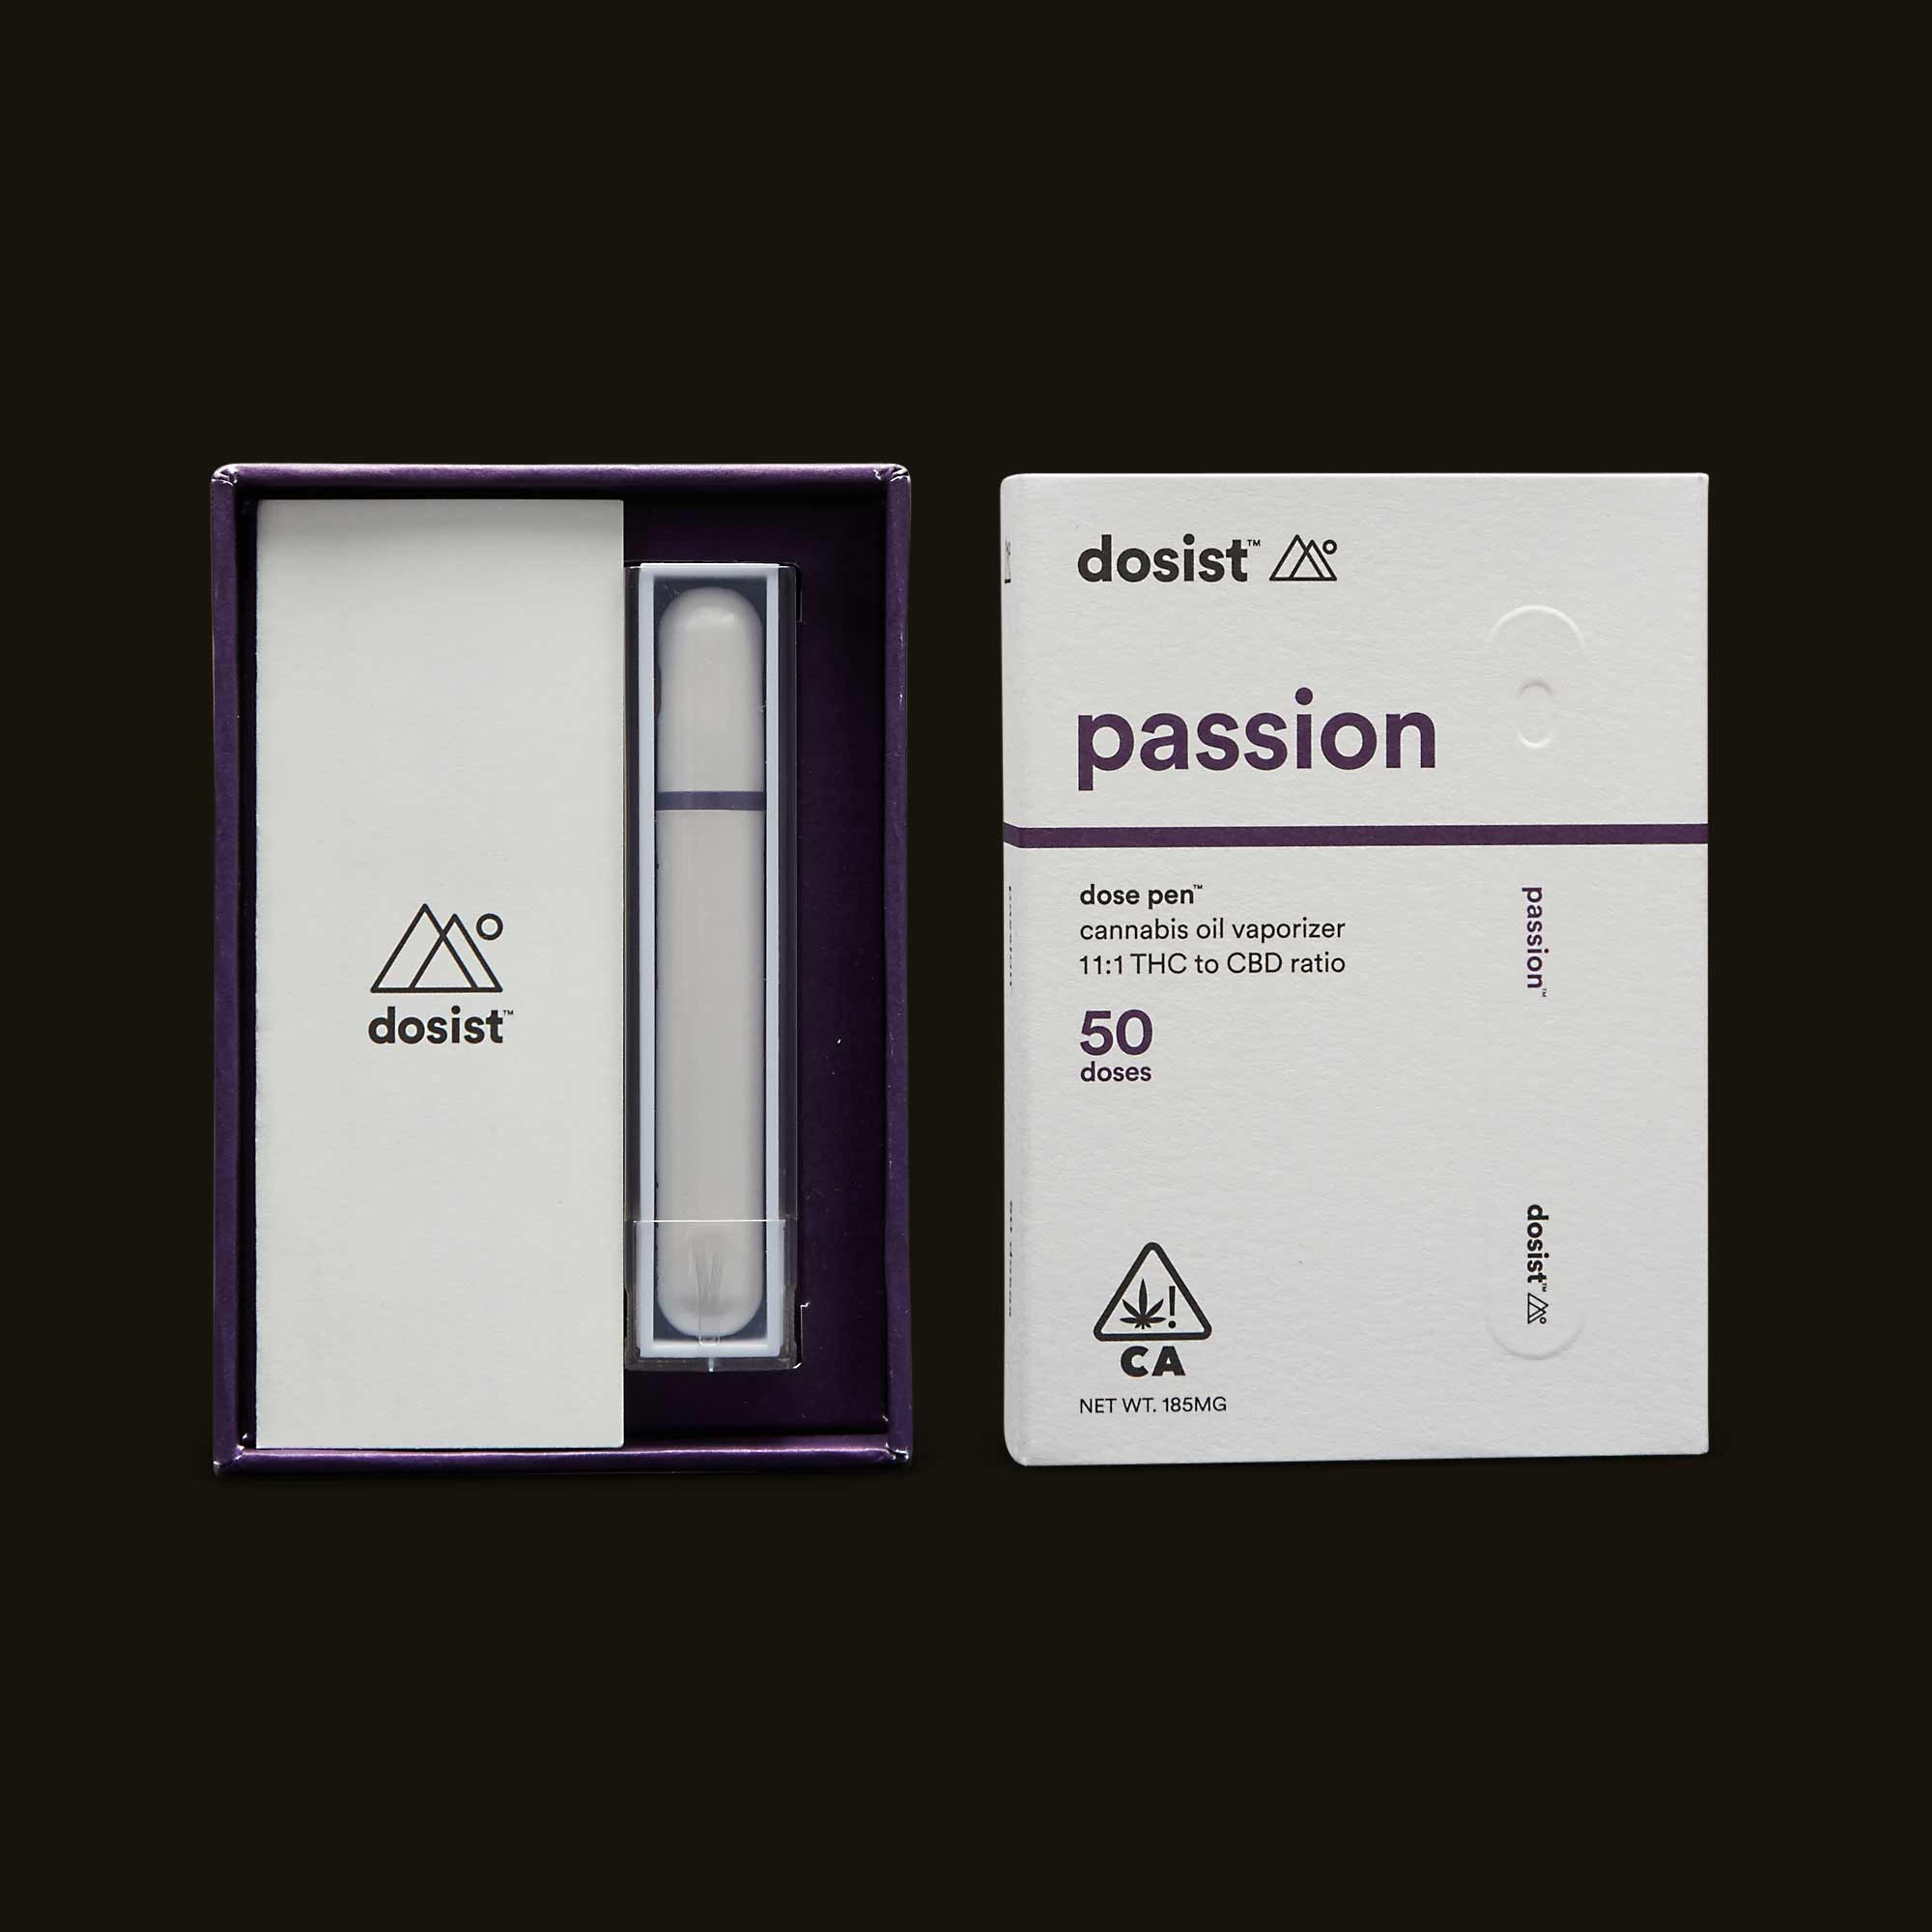 sex vape pen dosist in packaging